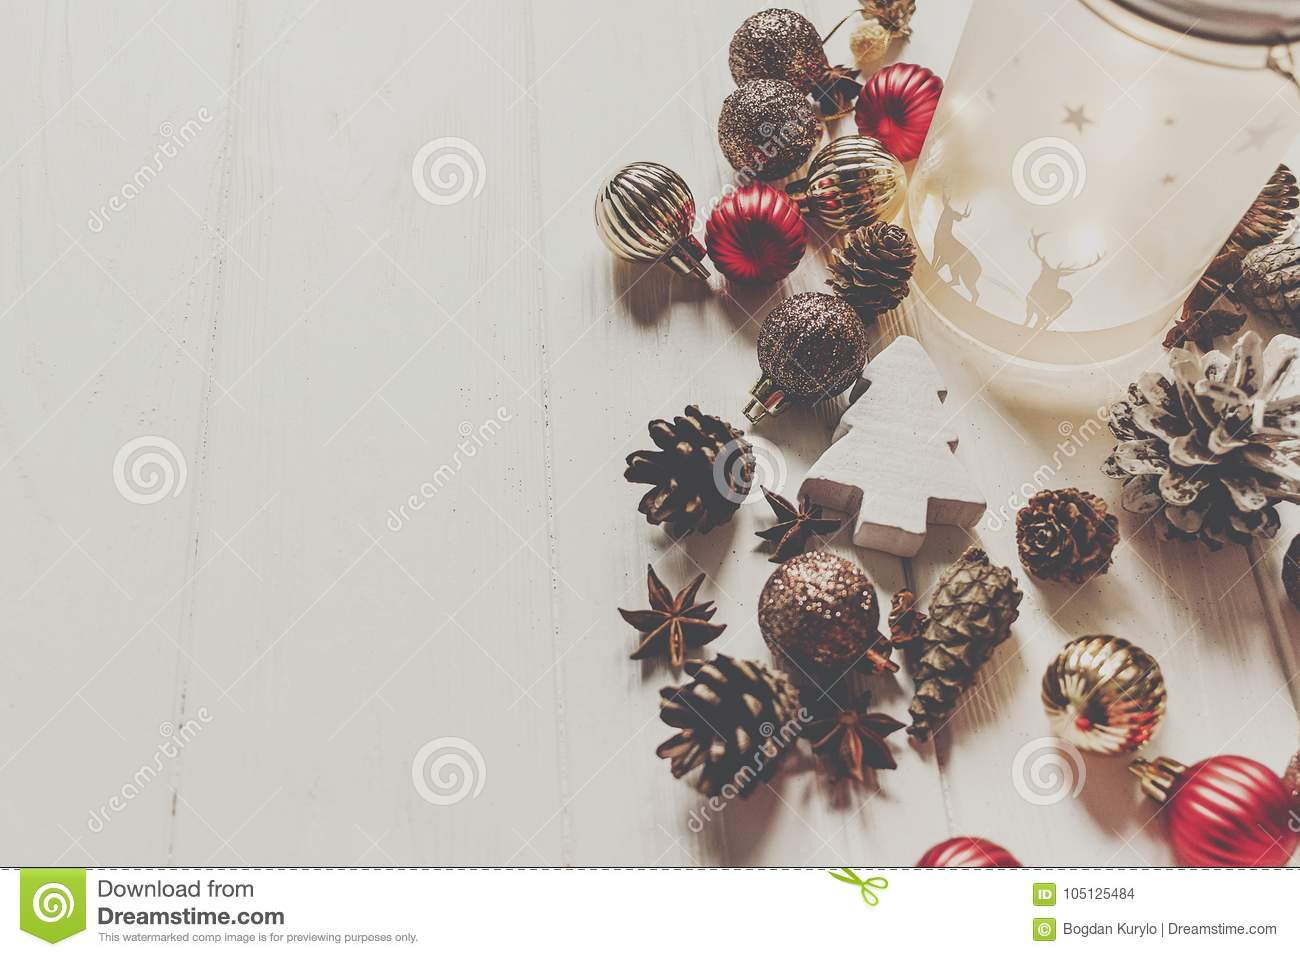 download modern christmas ornaments and cones anise on white wooden backg stock photo image of - Modern Christmas Ornaments